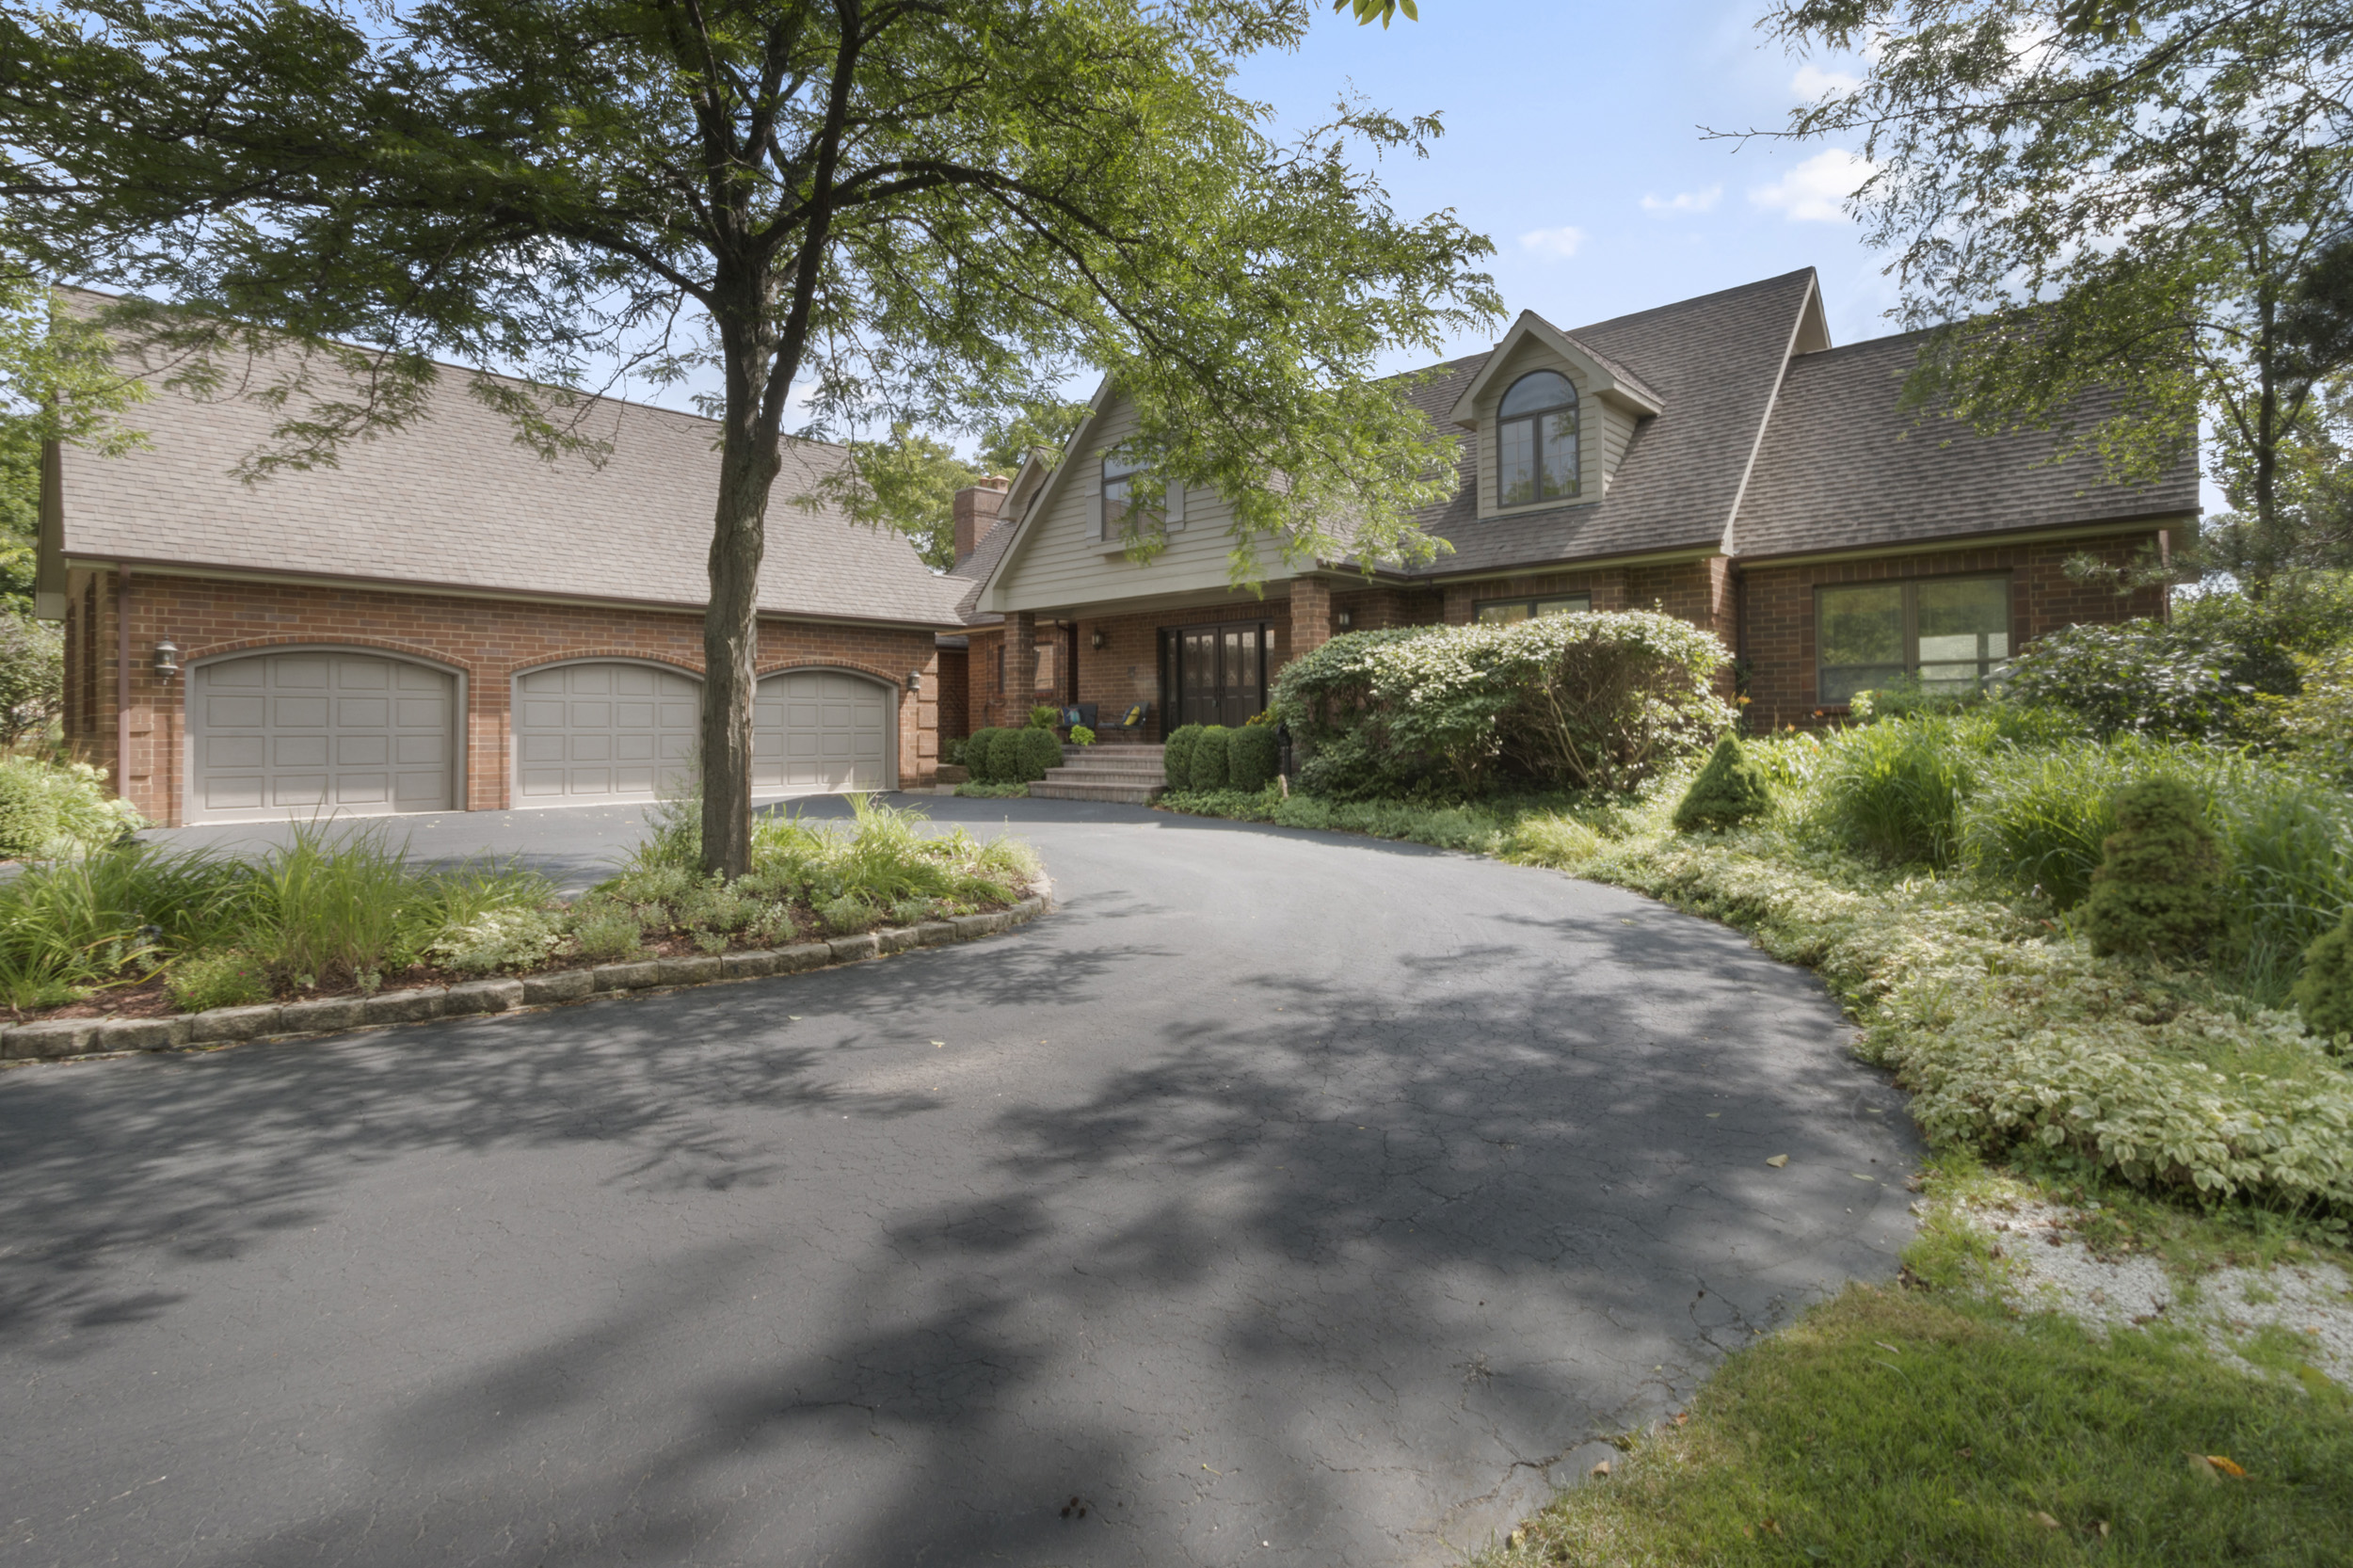 New Listing! 5BR, 5BA With Views of Palmer 6 and 7 Fairways | 1085 Geneva National Ave, Geneva National WI